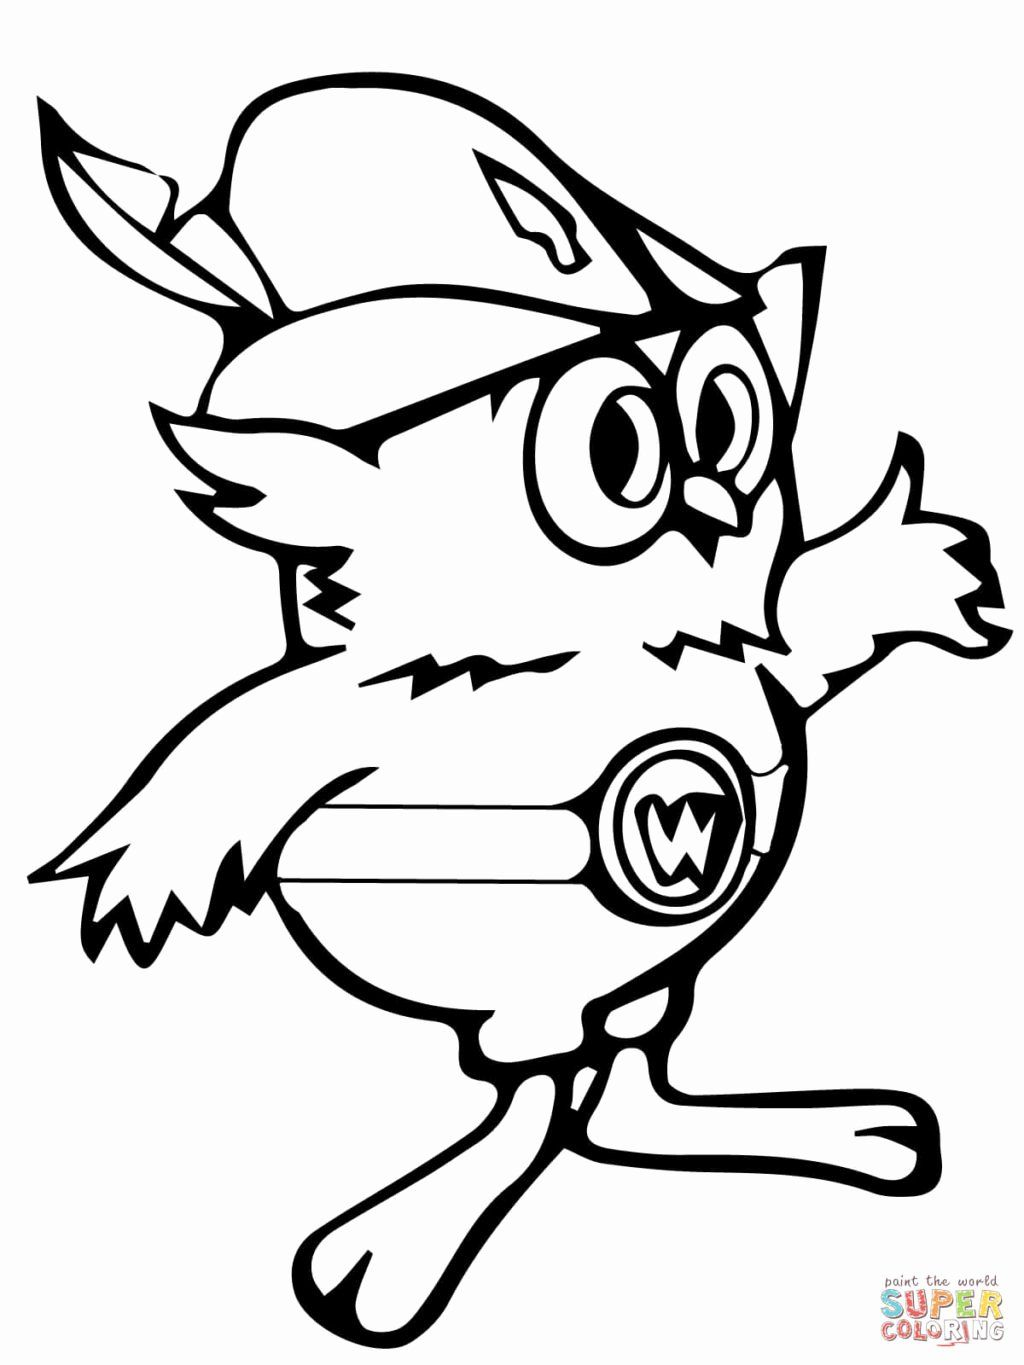 Printable Owl Coloring Pages Inspirational Owl Free Colouring Pages Owl Coloring Pages Bear Coloring Pages Snake Coloring Pages